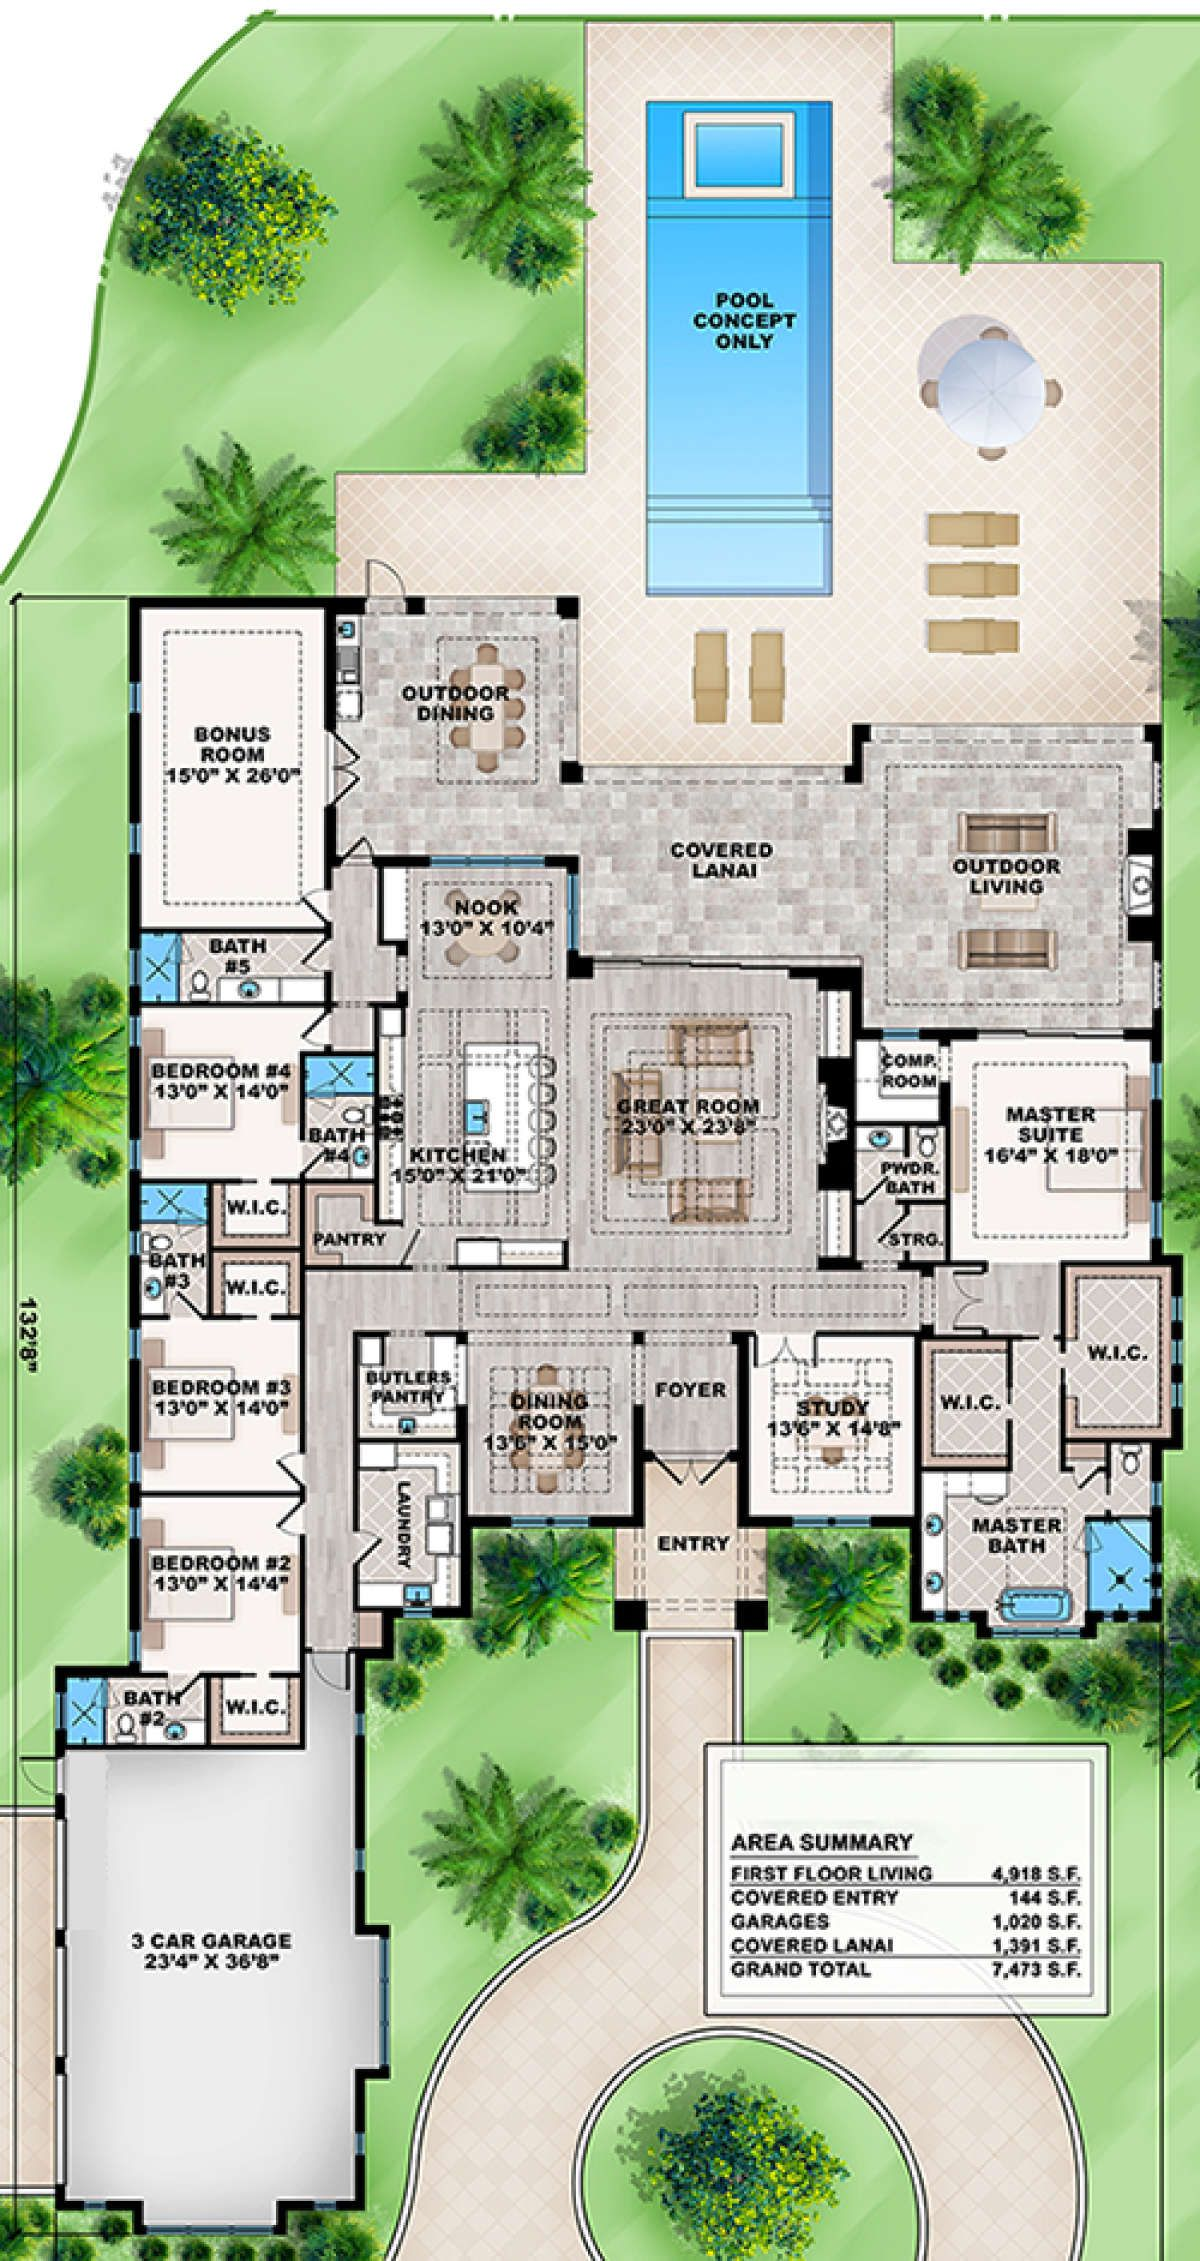 House Plan 207 00035 Contemporary Plan 4 918 Square Feet 5 Bedrooms 5 5 Bathrooms House Floor Plans New House Plans Traditional House Plans